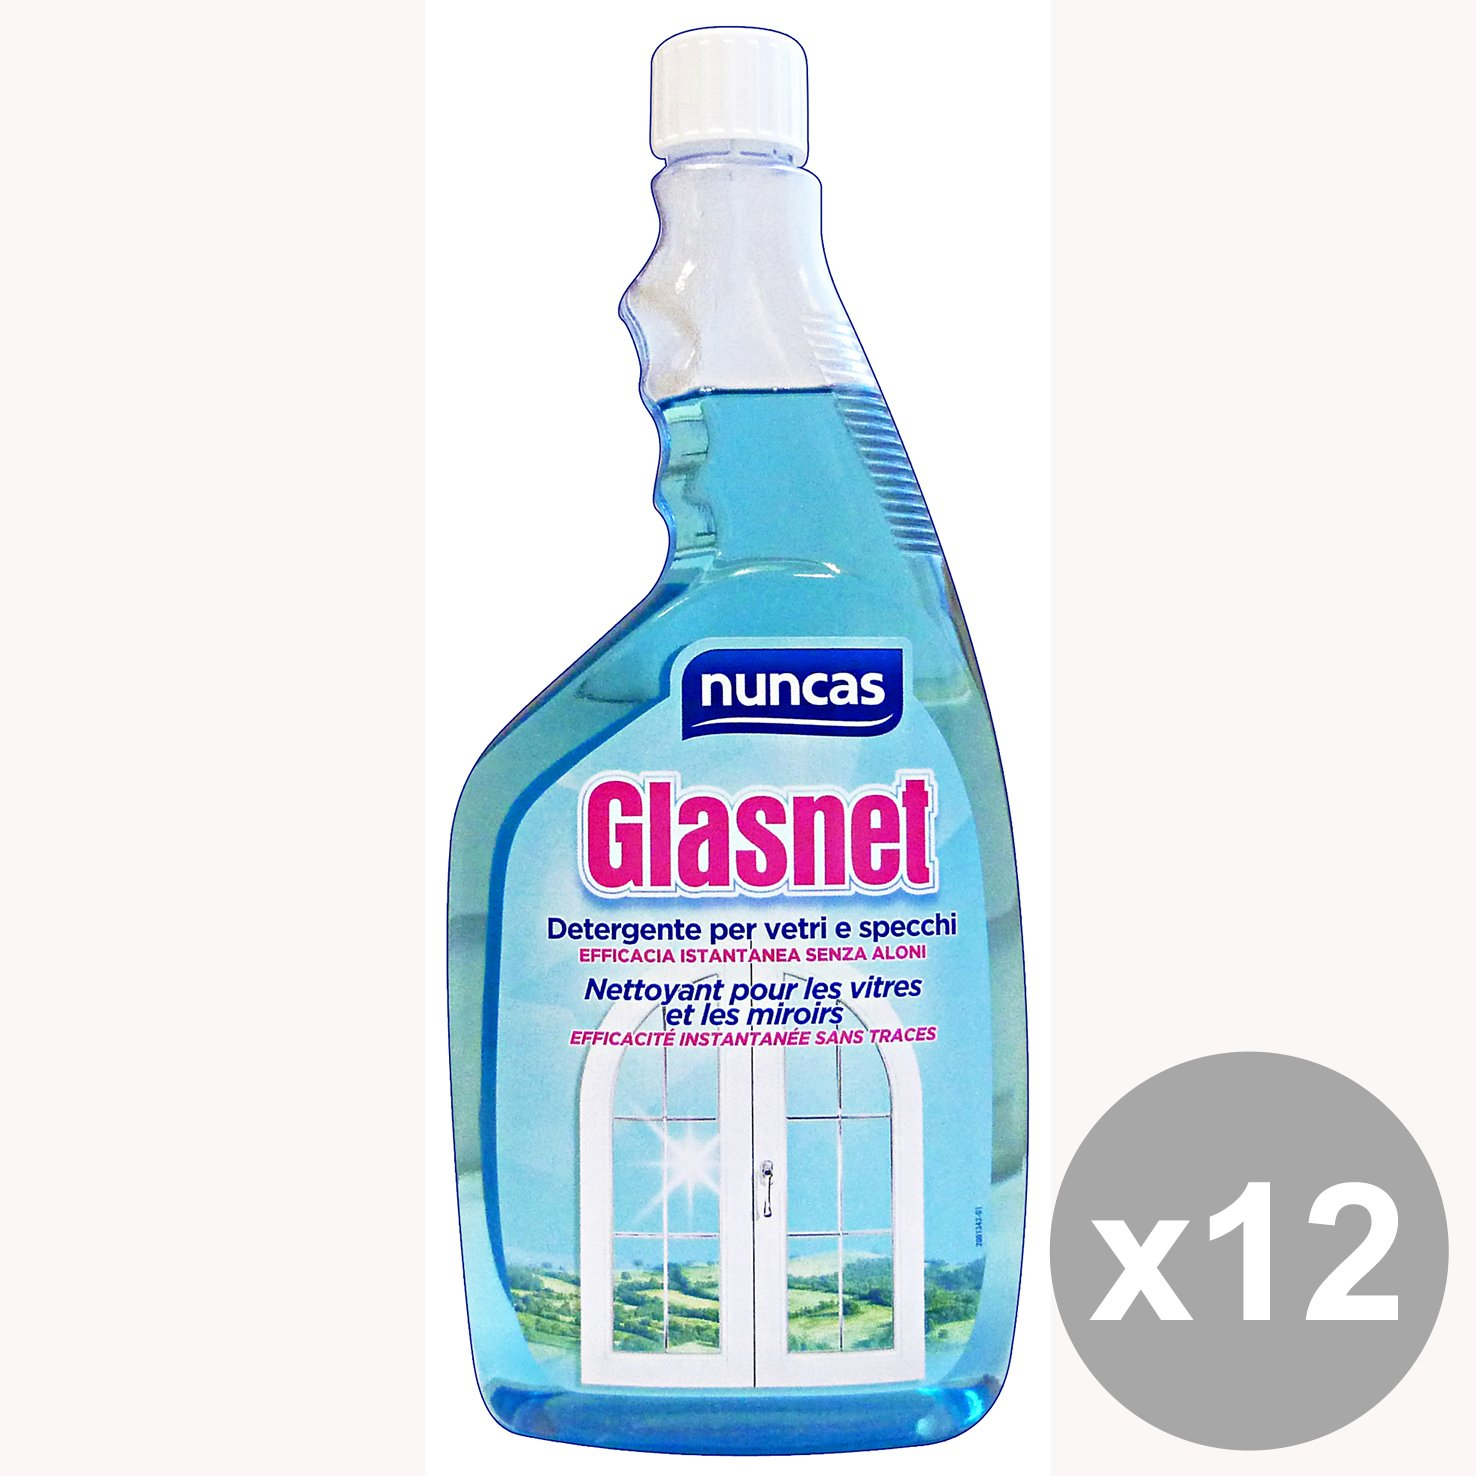 NUNCAS Set 12 Glasnet Verglasungs Reload 750 Ml. Hausputz